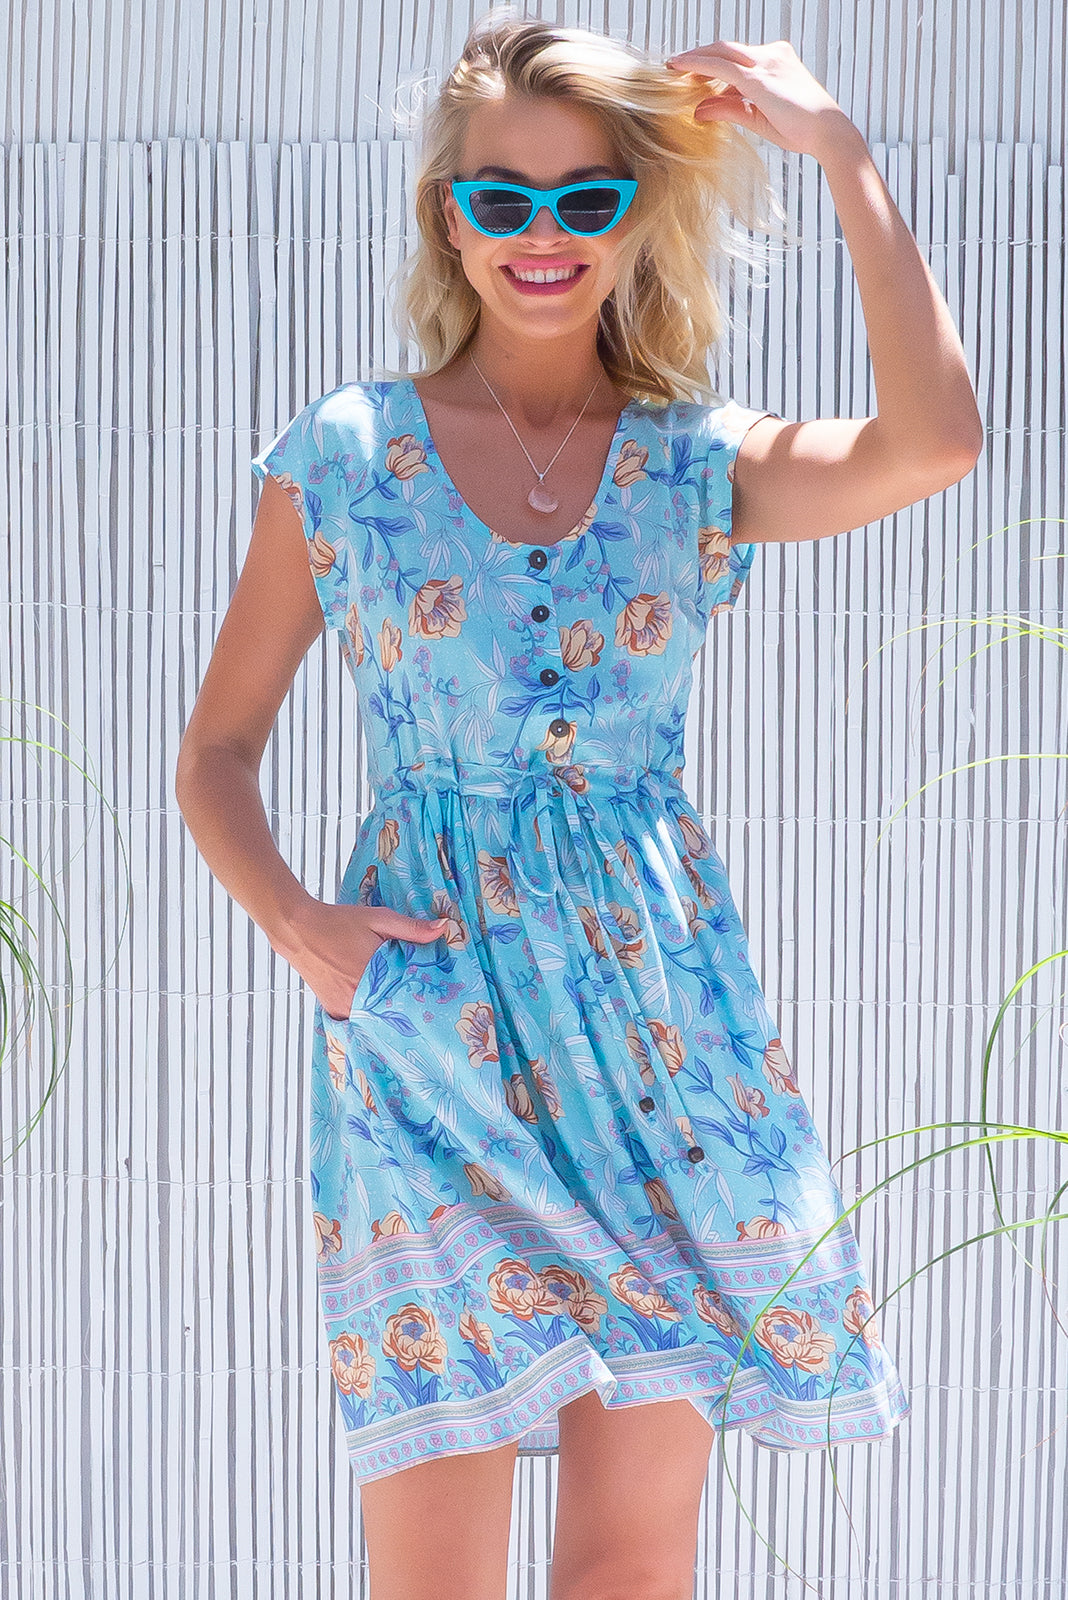 The Juniper Cornflower Blue Dress features functional button down chest to waistline, cap sleeves, side pockets, adjustable drawstring waist and 100% viscose in light blue base with a large floral print.